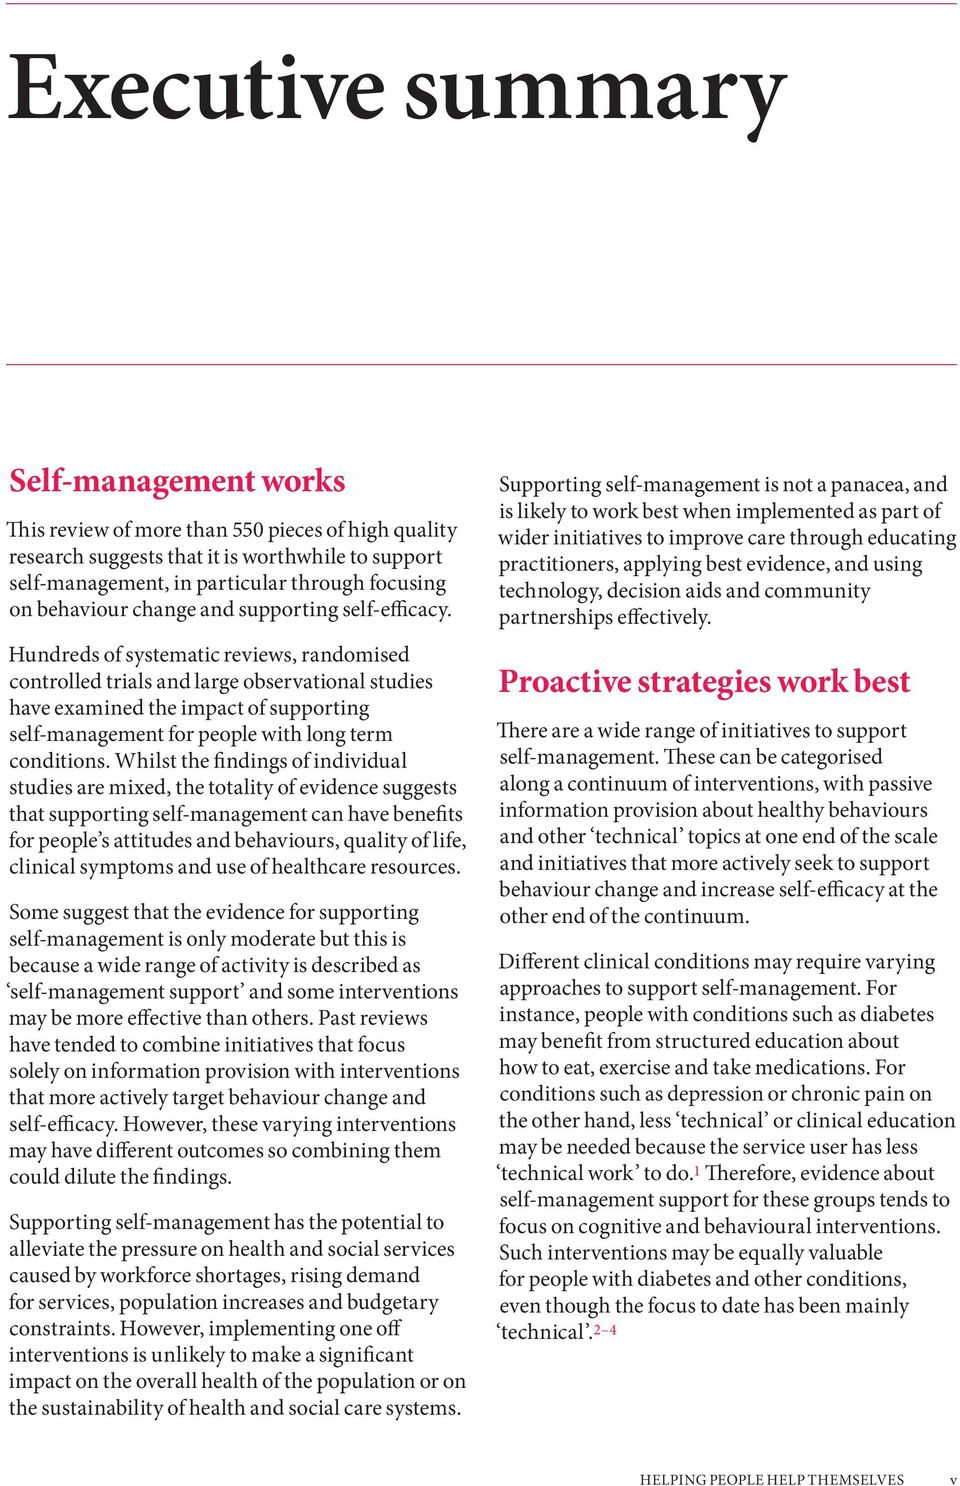 Hundreds of systematic reviews, randomised controlled trials and large observational studies have examined the impact of supporting self-management for people with long term conditions.